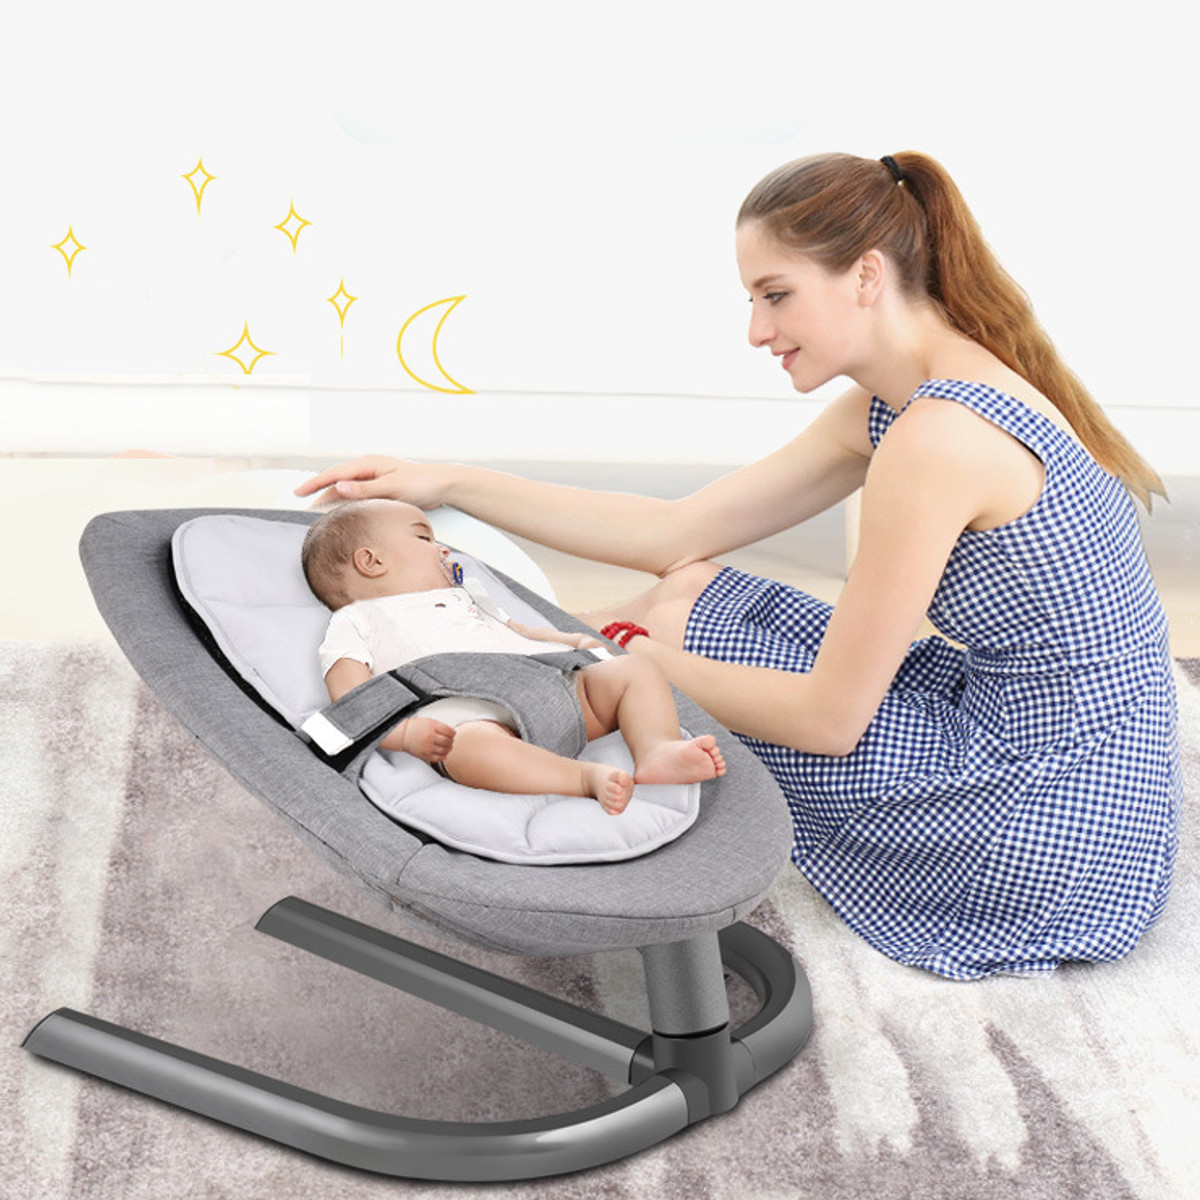 H8c379933ec664b2fb3007ce695a6ed3ad Newborn Electric Swing Multifunctional  Baby Bouncer Cradle Rocking Chair With Mosquito Net Cradle Crib Sleeping Safety Basket